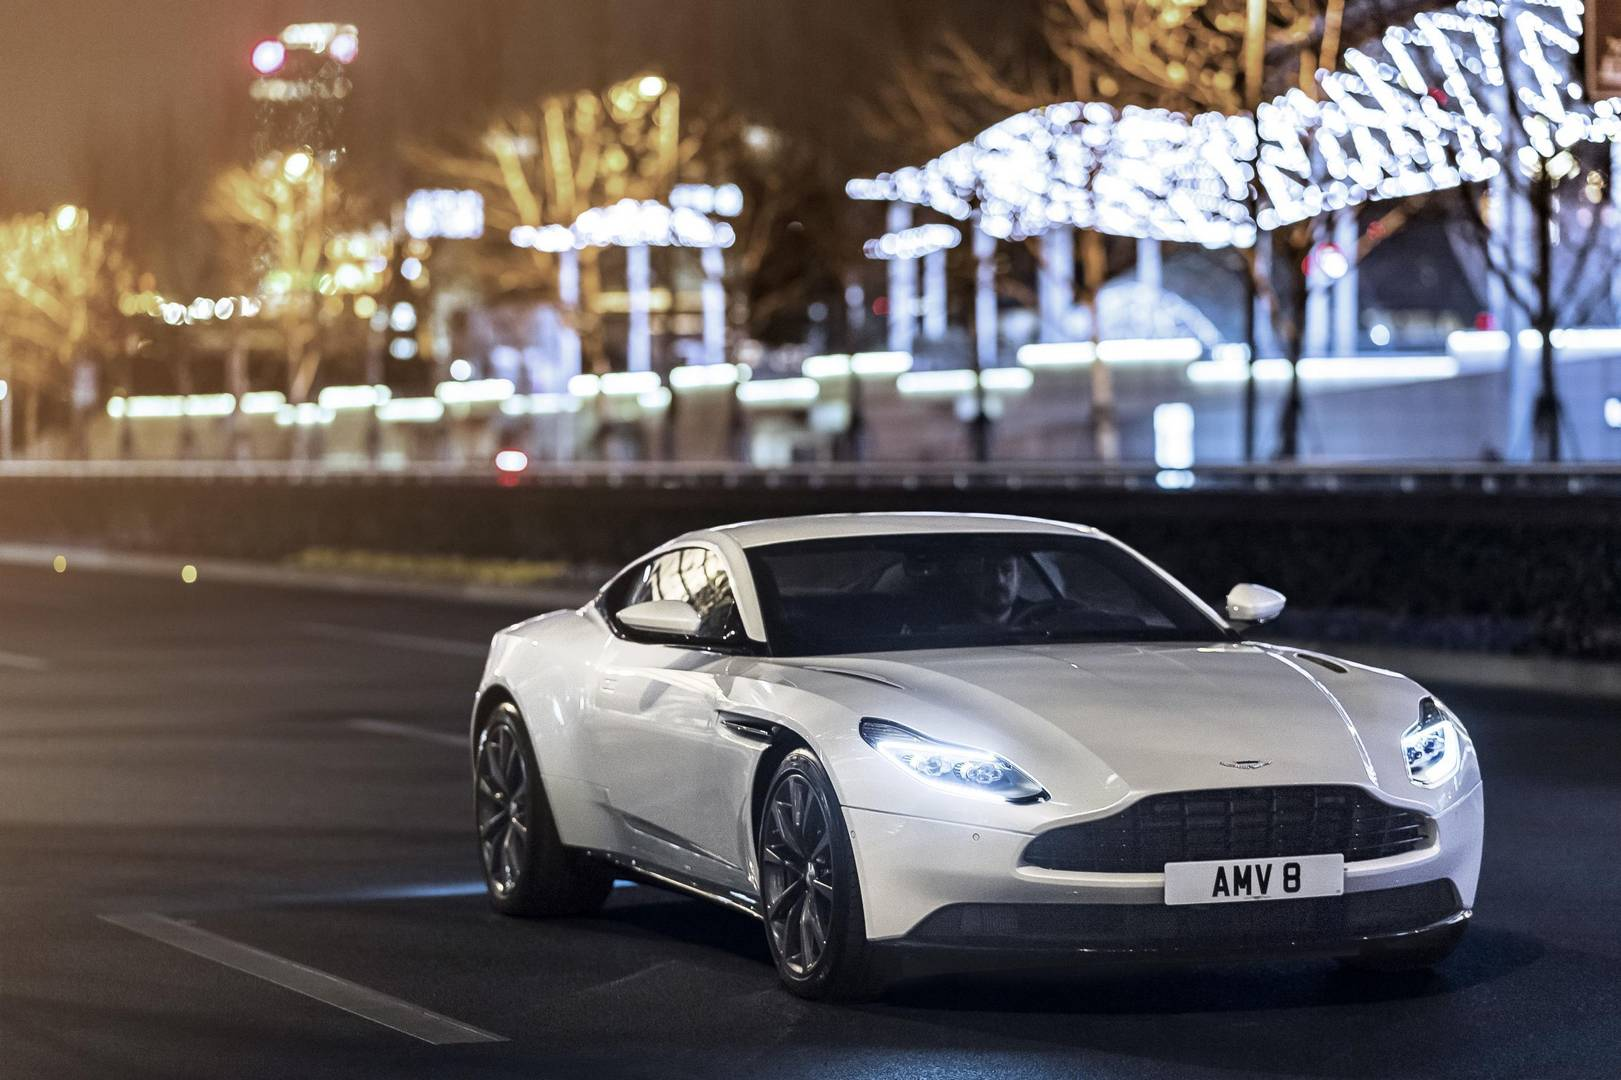 official: 2018 aston martin db11 v8 - gtspirit